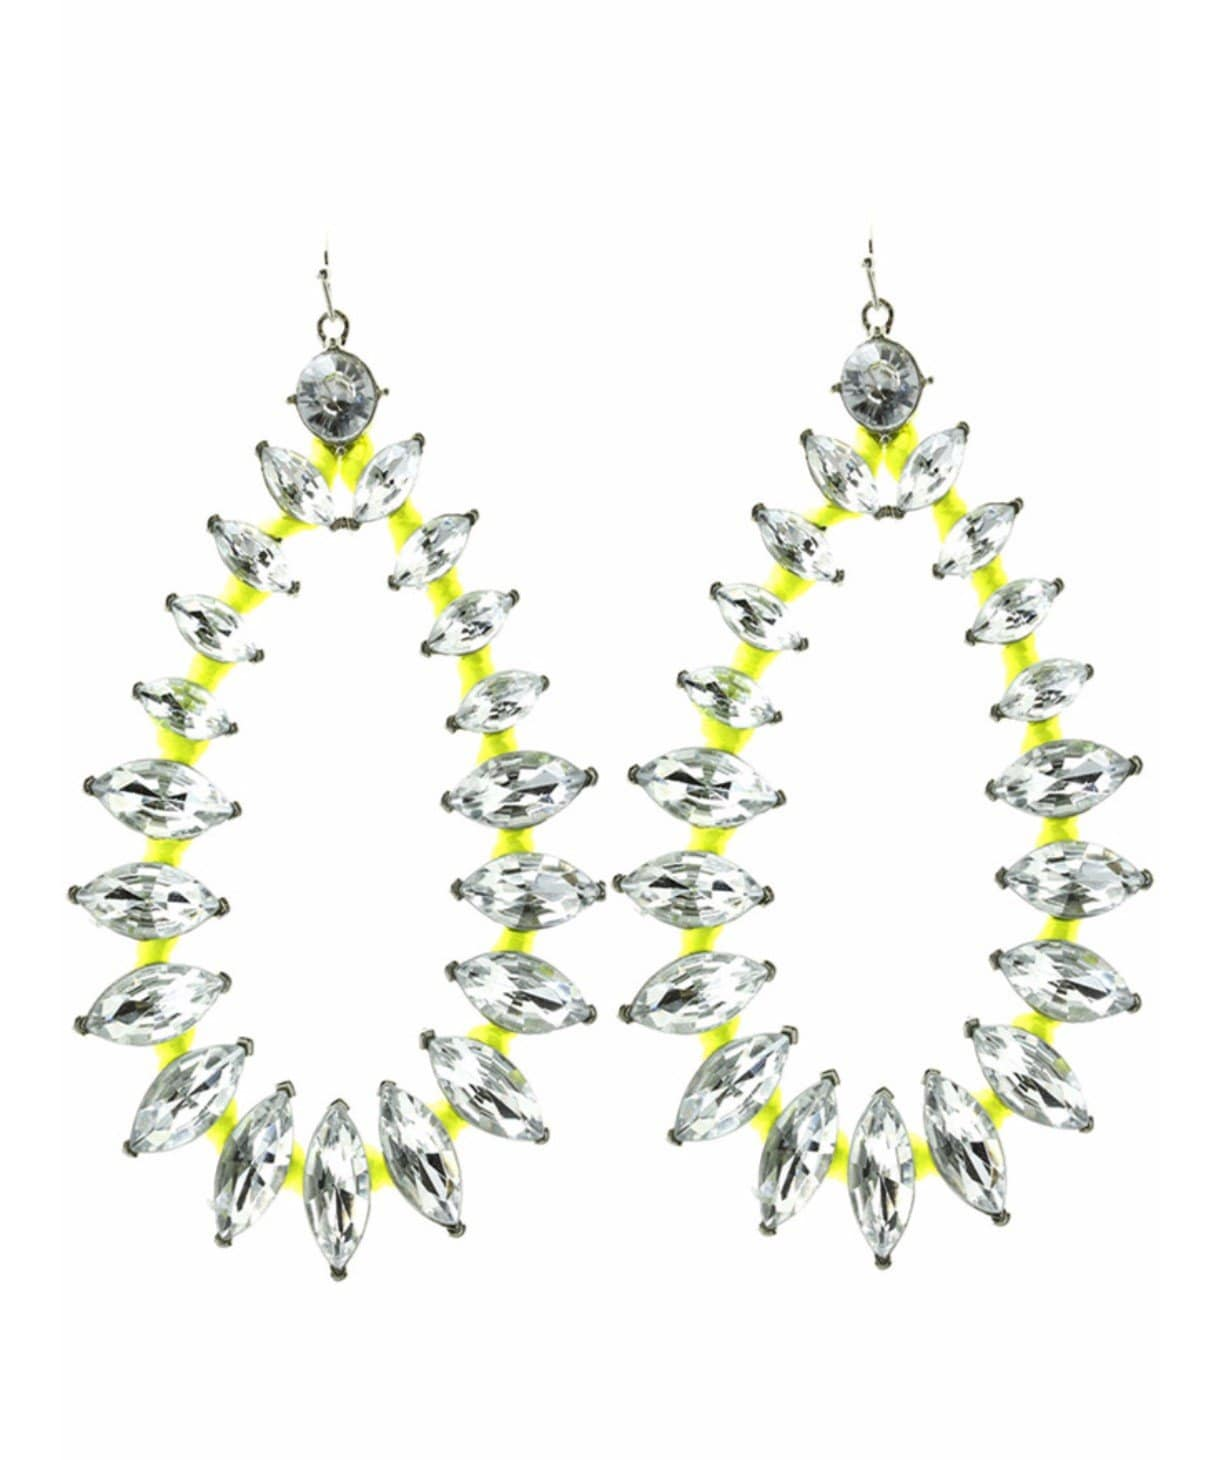 Neon Yellow Hue Earrings - Uptownie